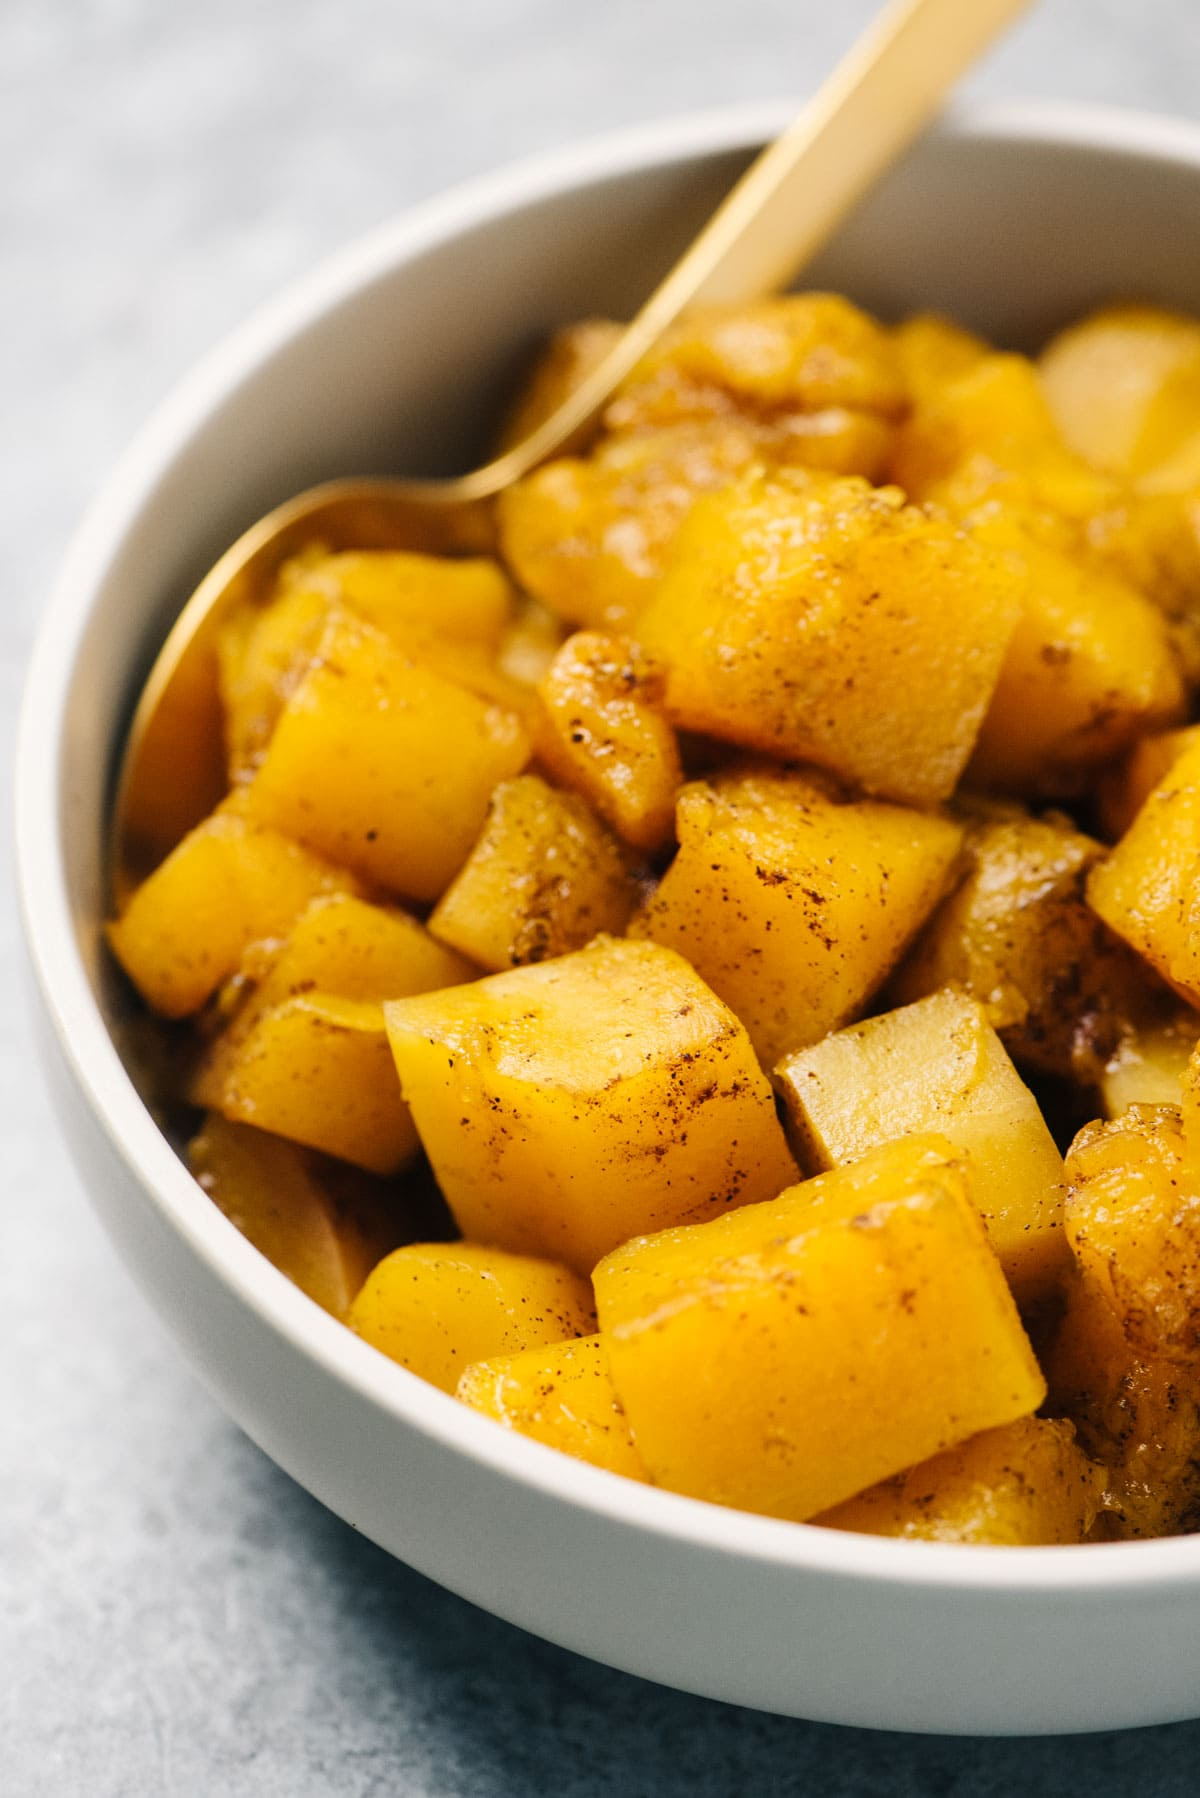 Diced and steamed instant pot butternut squash in a tan serving bowl, seasoned with spices, with a gold serving spoon.